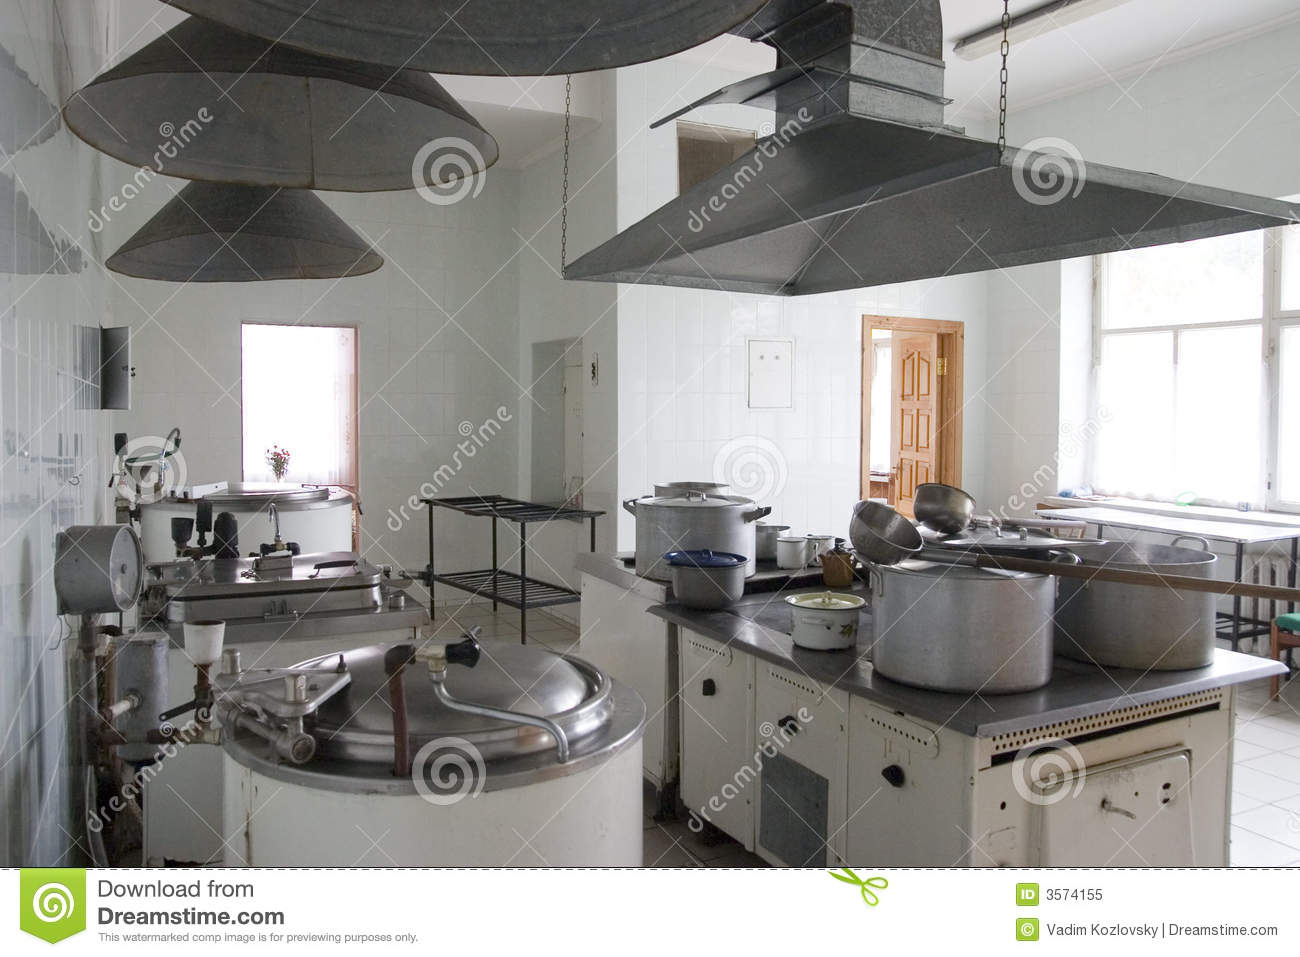 Hospital Kitchen Royalty Free Stock Photo Image: 3574155 #82A328 1300 957